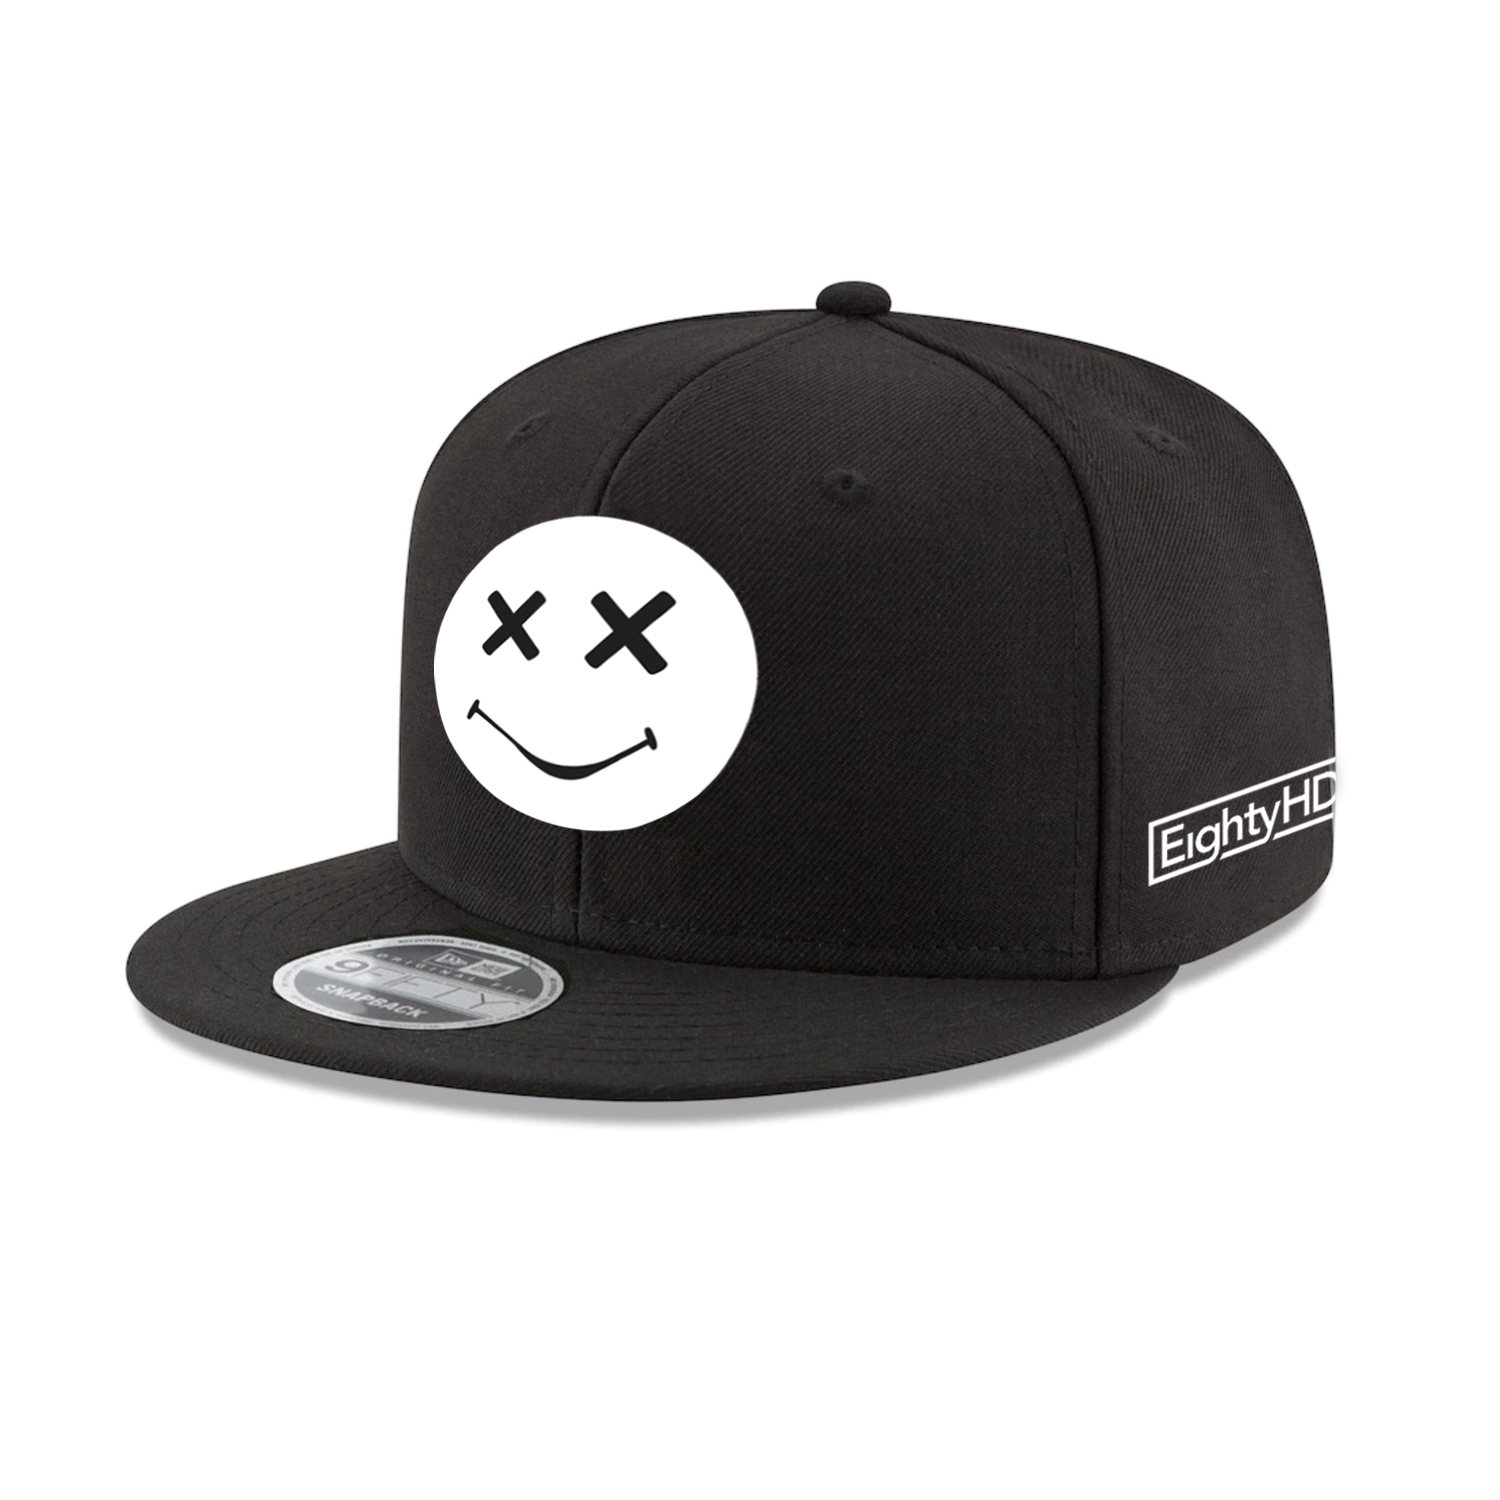 """Ganja Man"" New Era Cap"